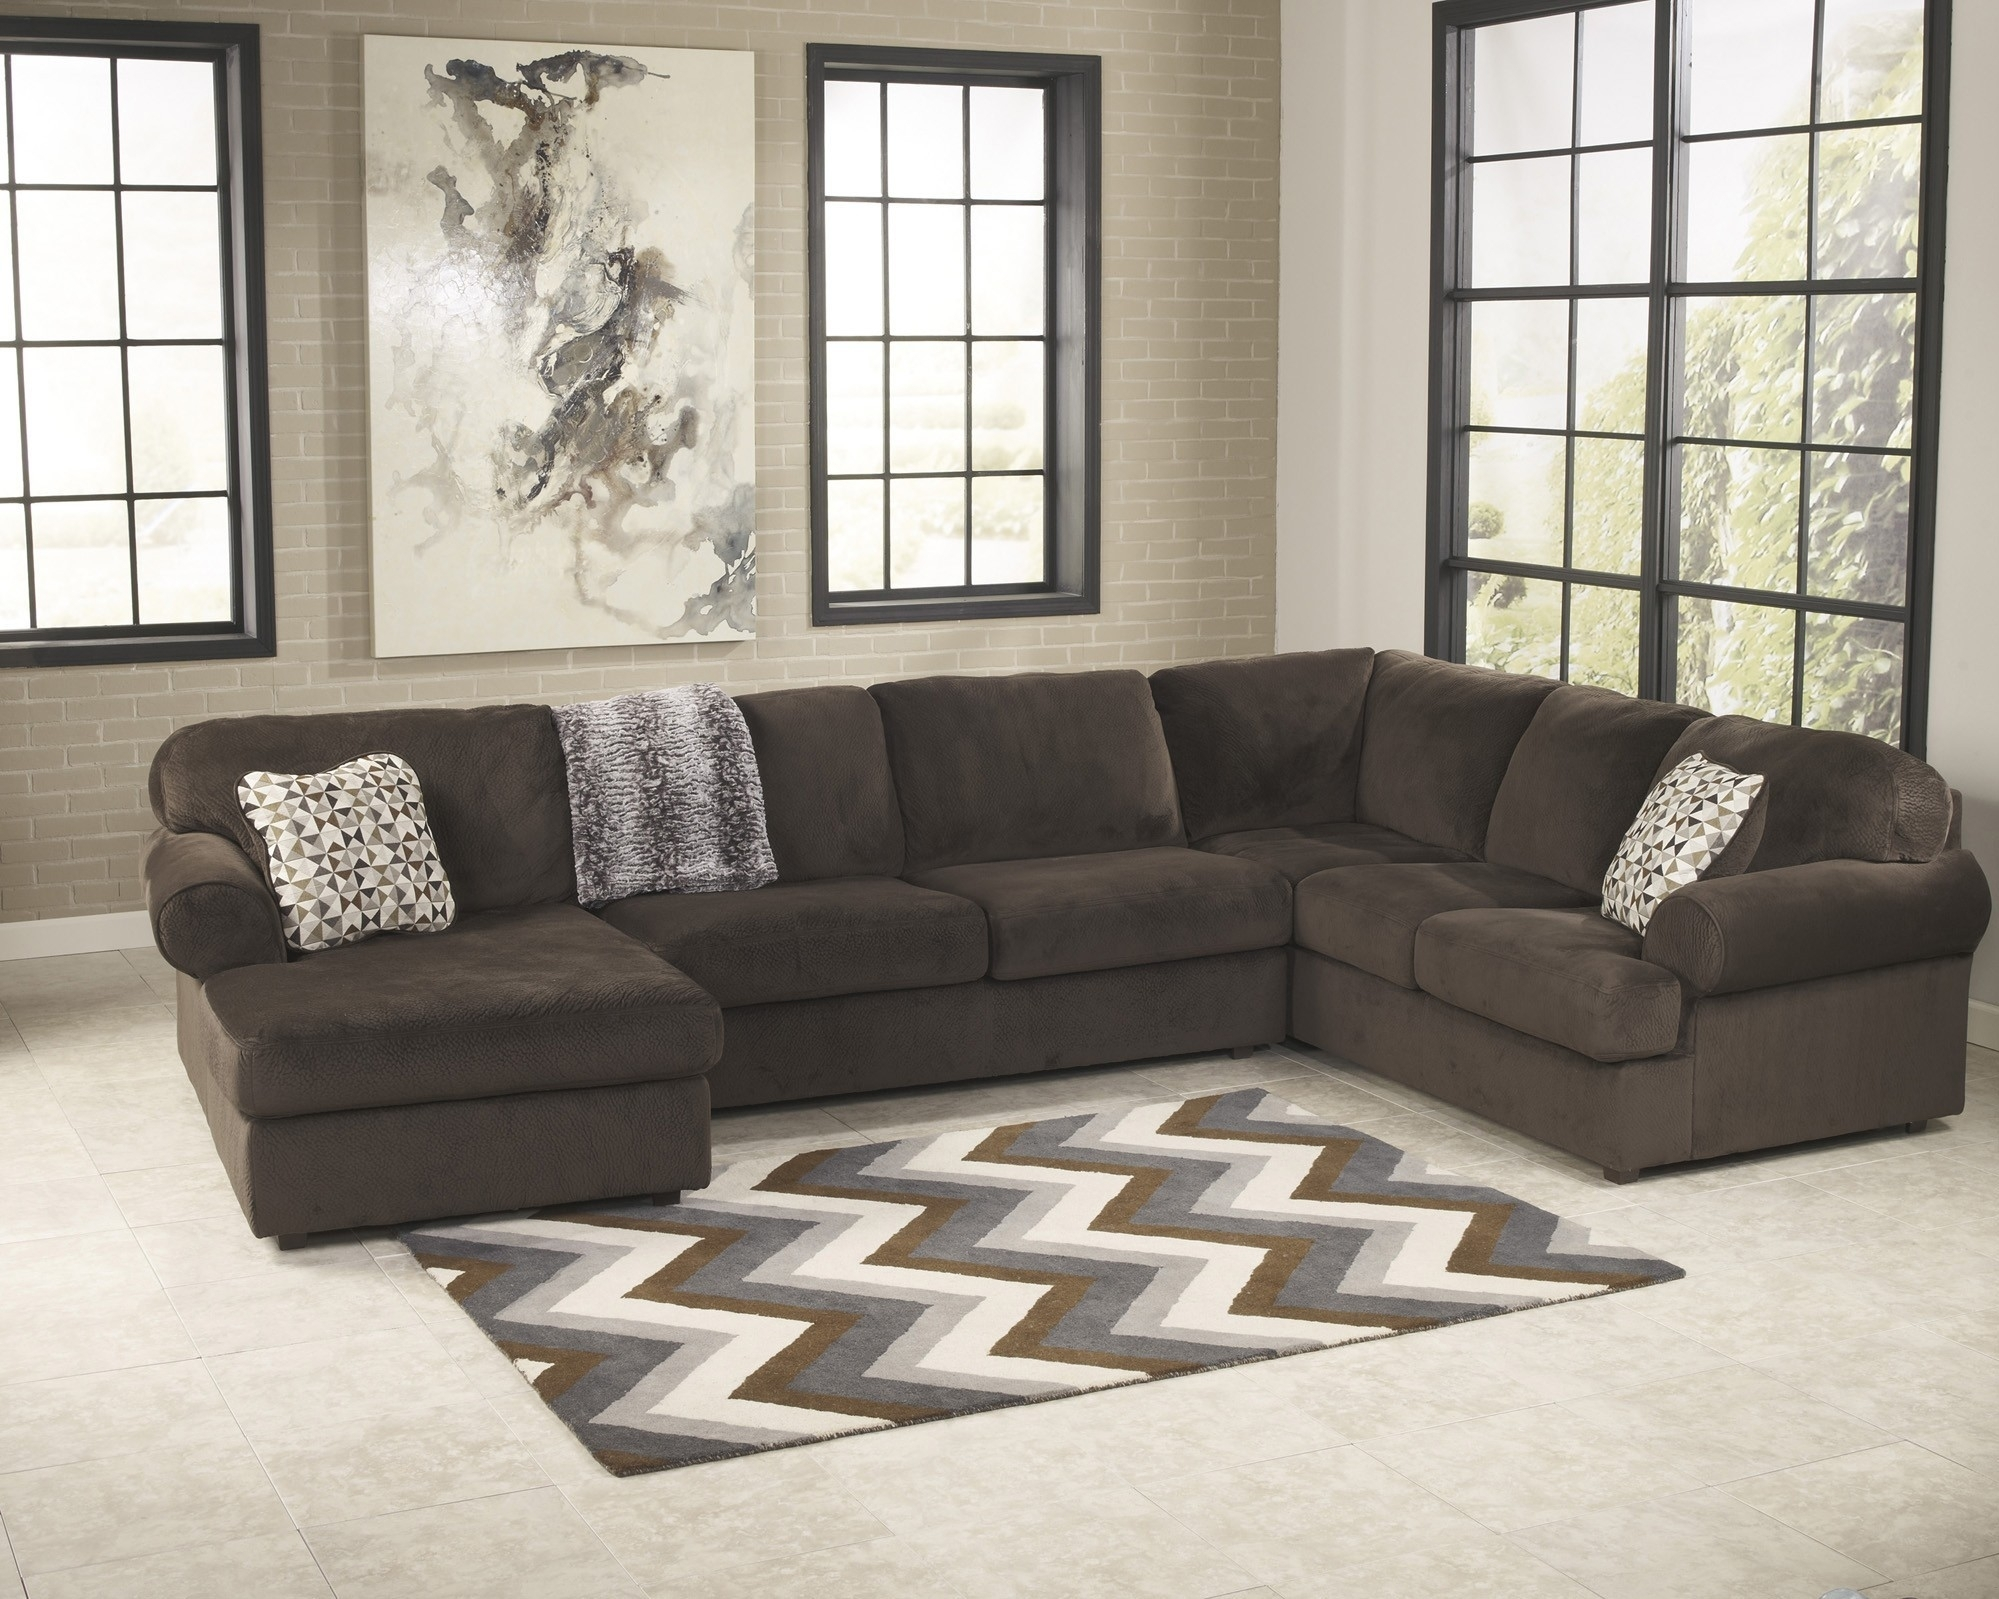 Elegant 3 Piece Sectional Sofa With Chaise – Buildsimplehome Pertaining To Haven 3 Piece Sectionals (Gallery 32 of 32)